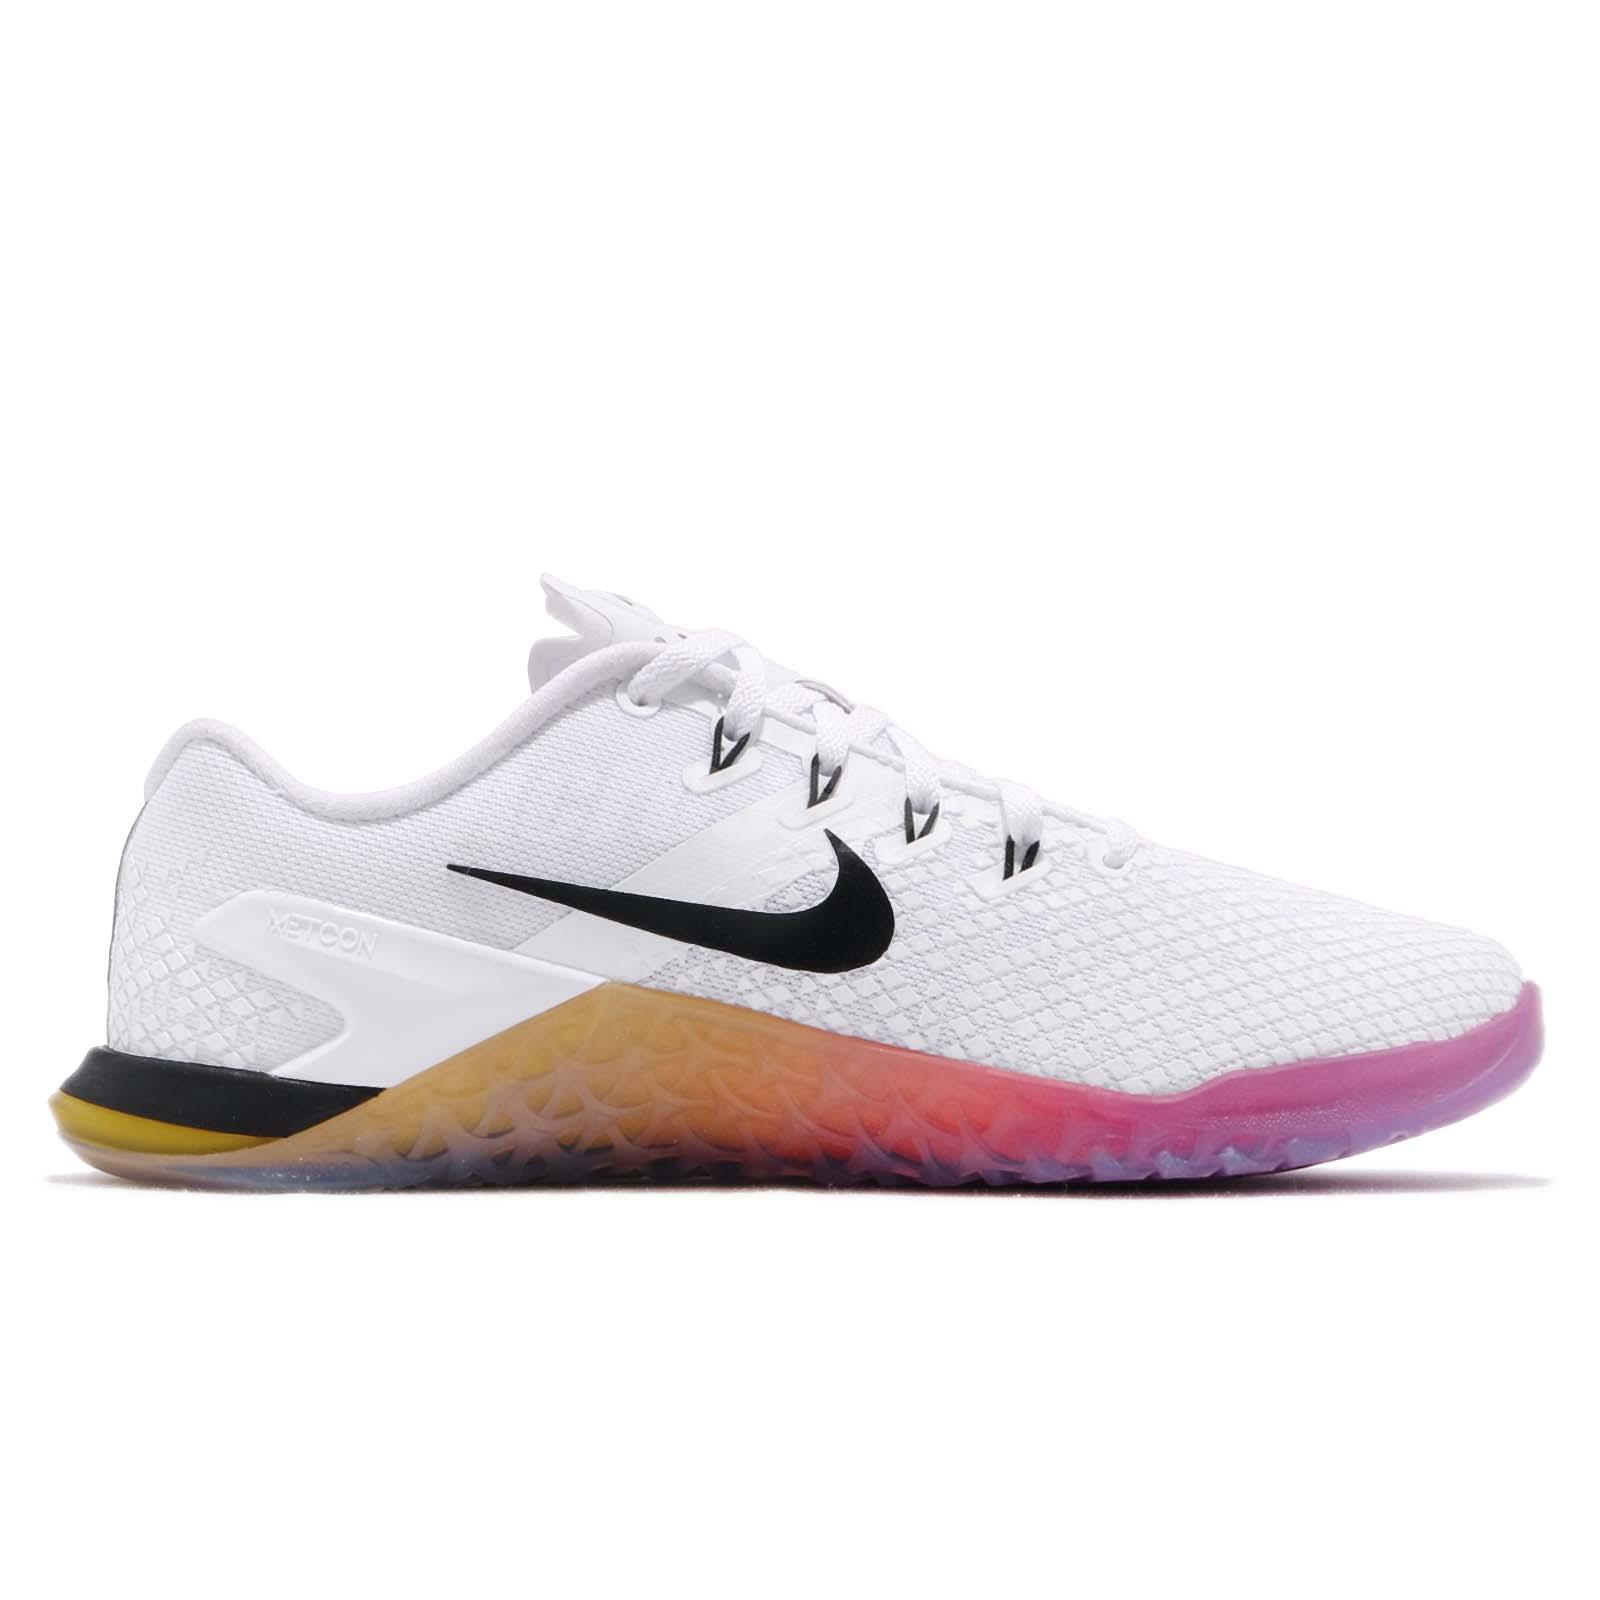 43cb9cb3e7068 Nike Wmns Metcon 4 XD White Black Pink Gold Women Cross Training ...